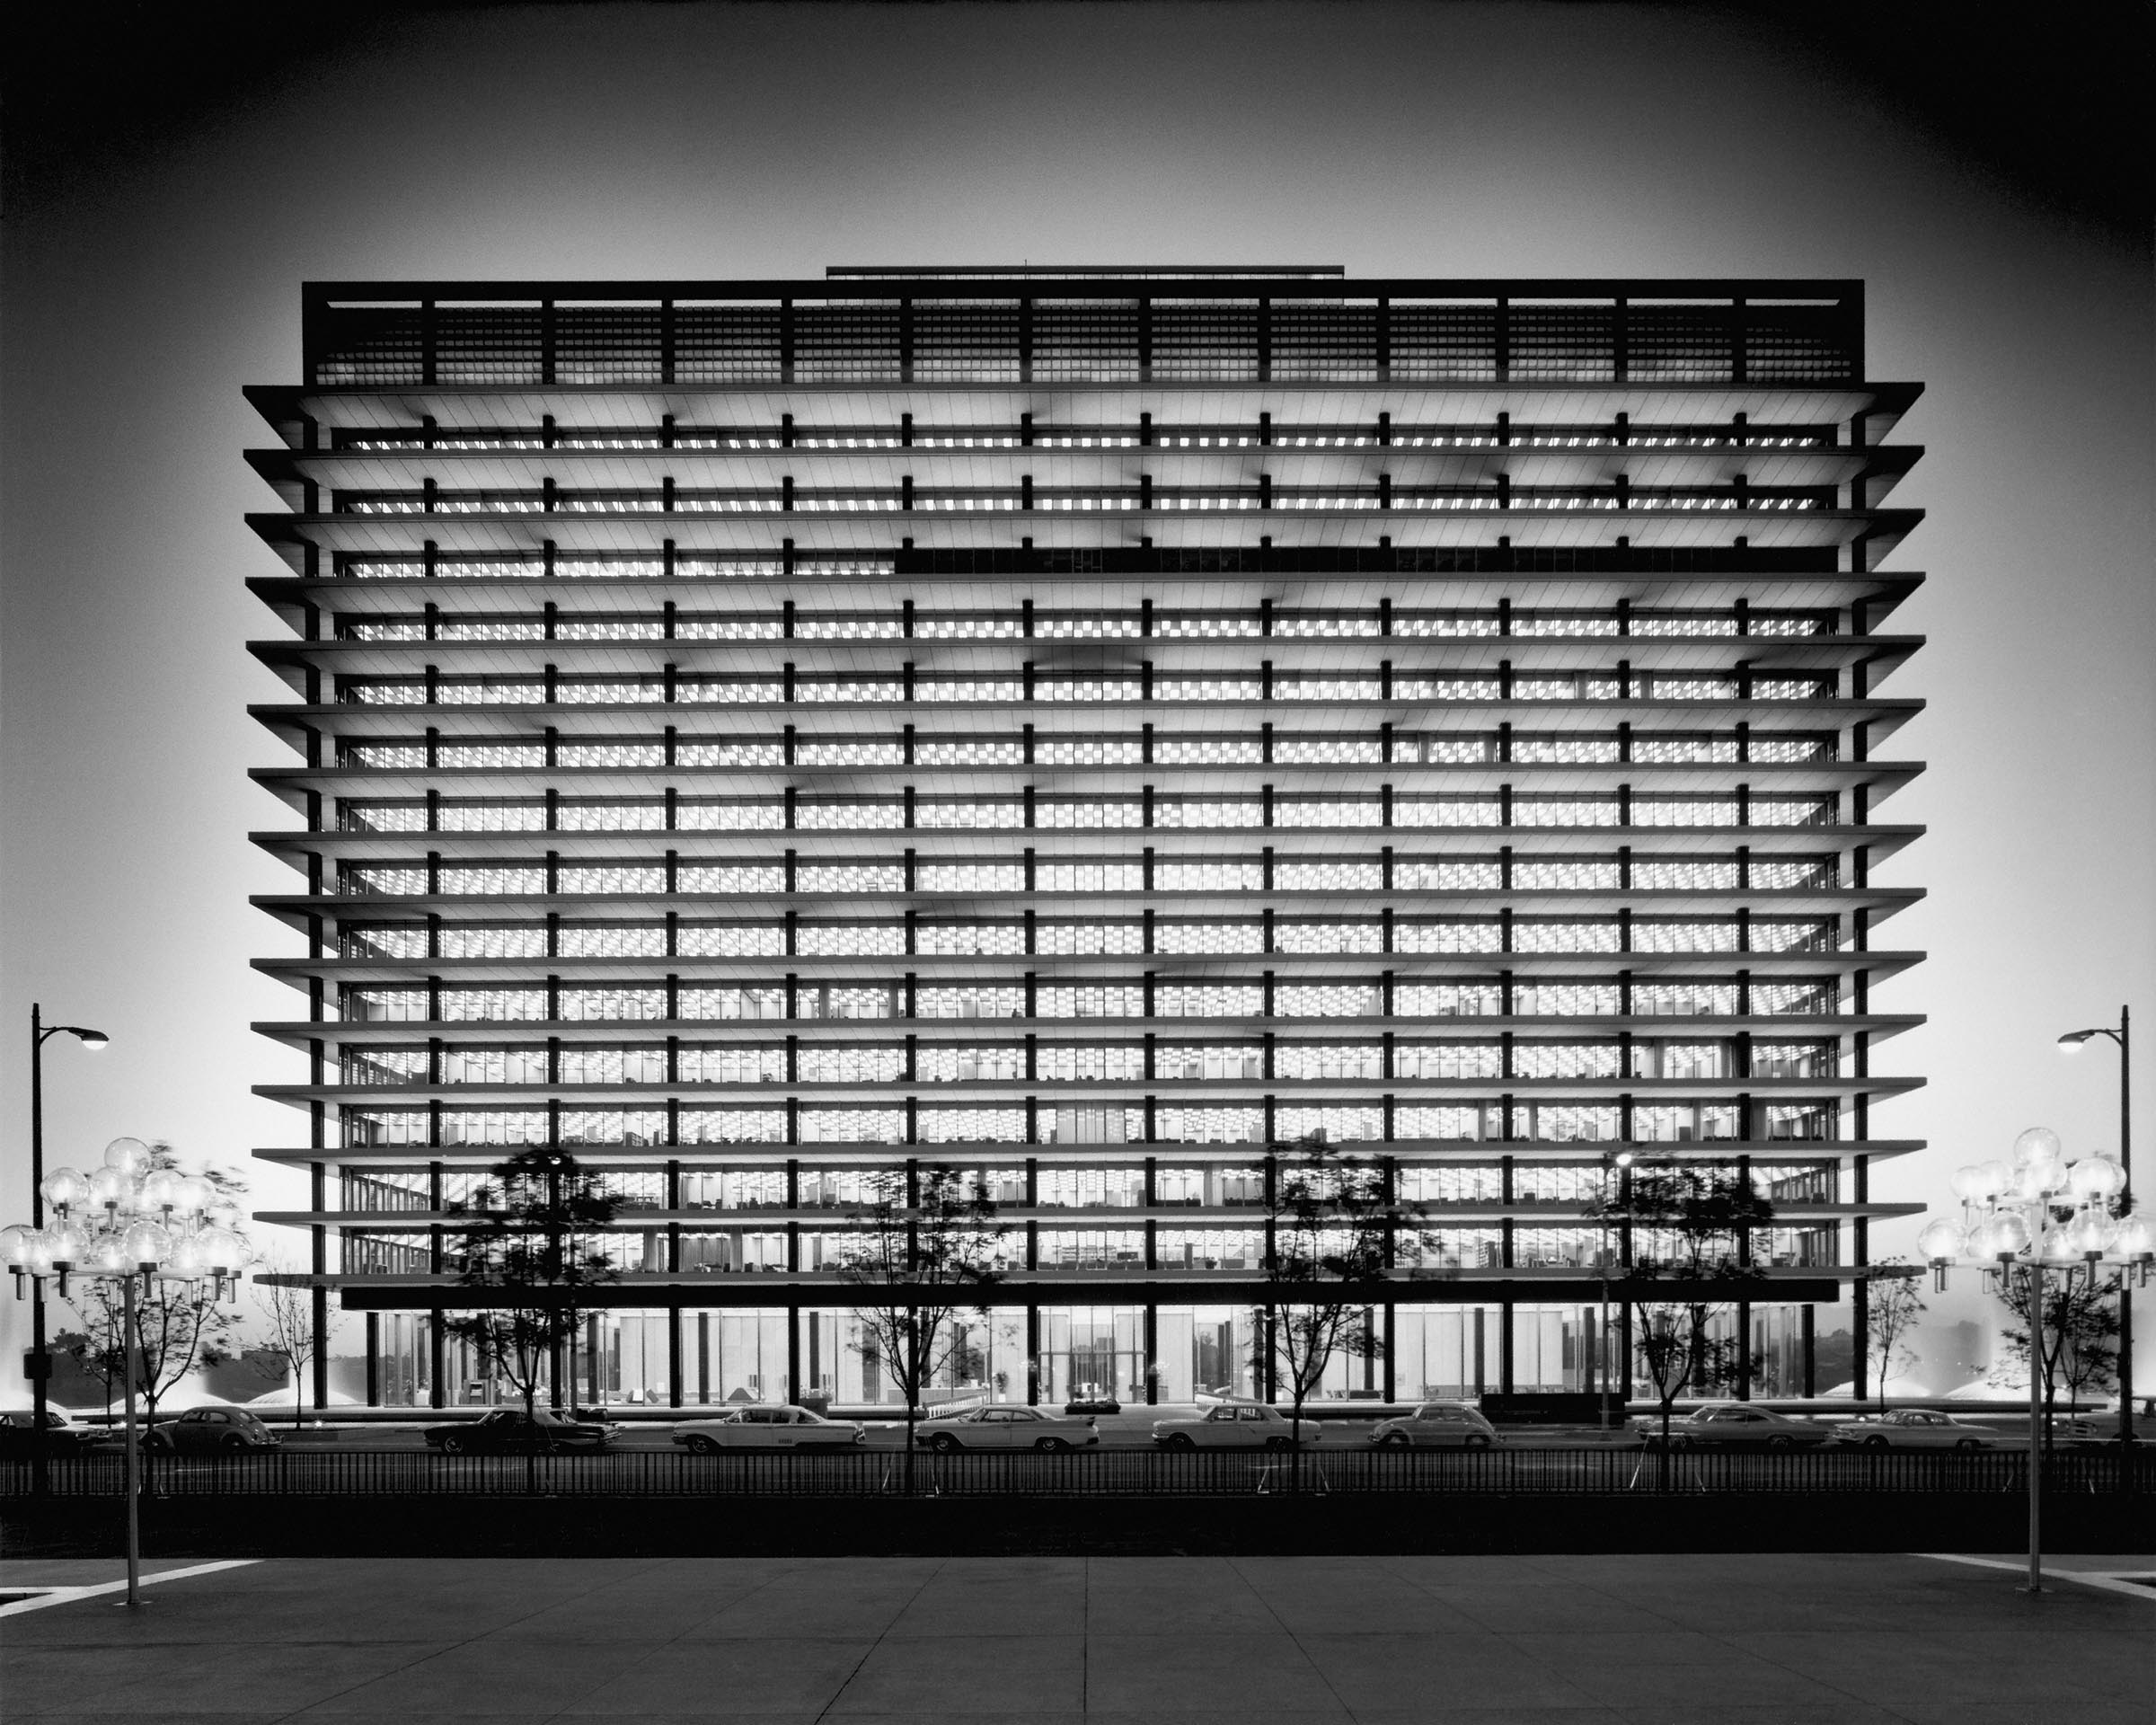 Building by A.C. Martin. Gelatin silver print by Julius Shulman. © J. Paul Getty Trust. Used with permission. Julius Shulman Photography Archive, Research Library at the Getty Research Institute (2004.R.10)